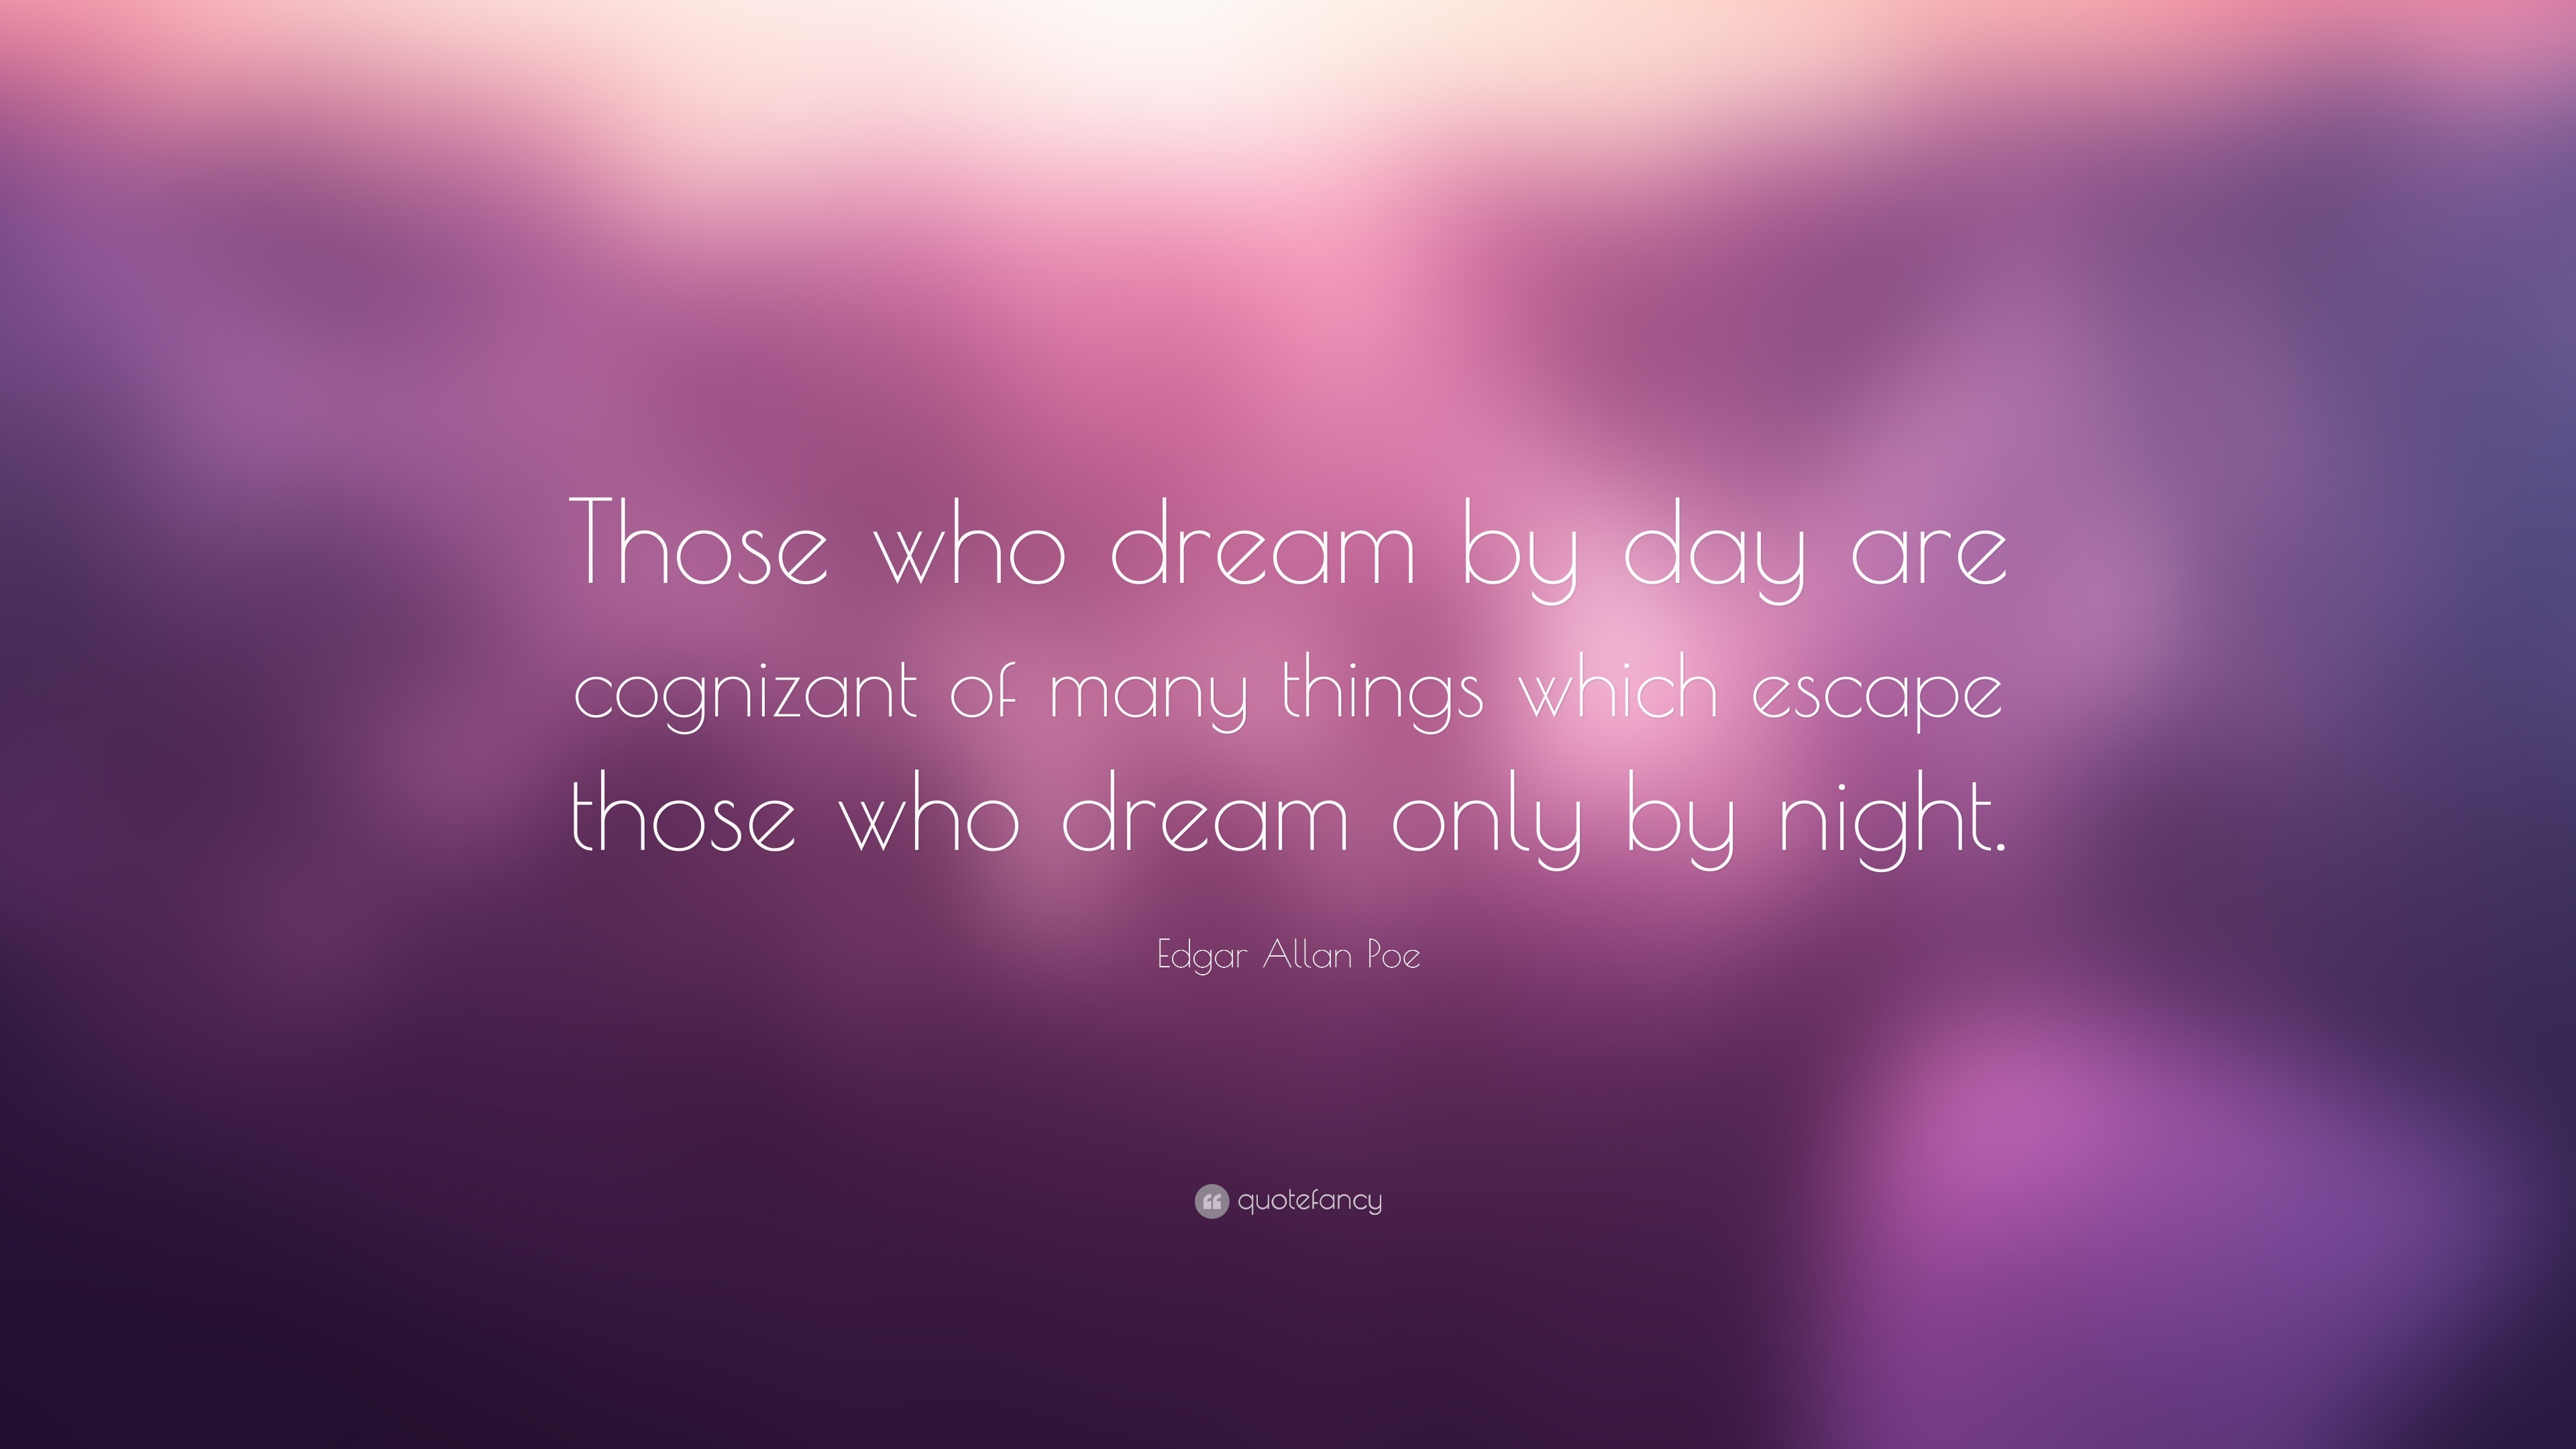 28983-Edgar-Allan-Poe-Quote-Those-who-dream-by-day-are-cognizant-of-many.jpg